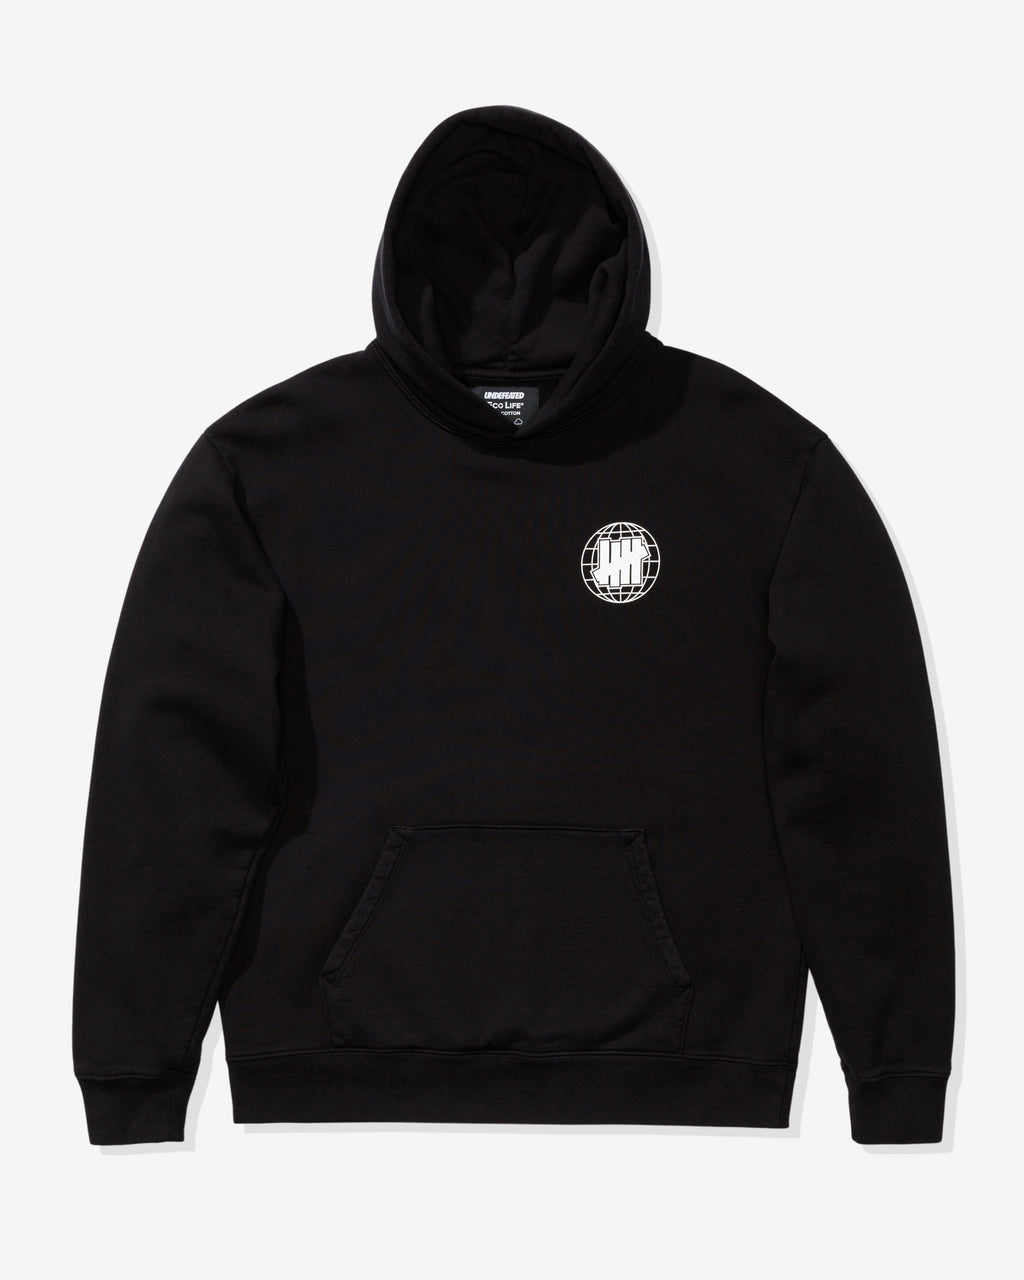 UNDEFEATED X ECOLIFE DON'T FUCK THIS UP HOODIE - BLACK